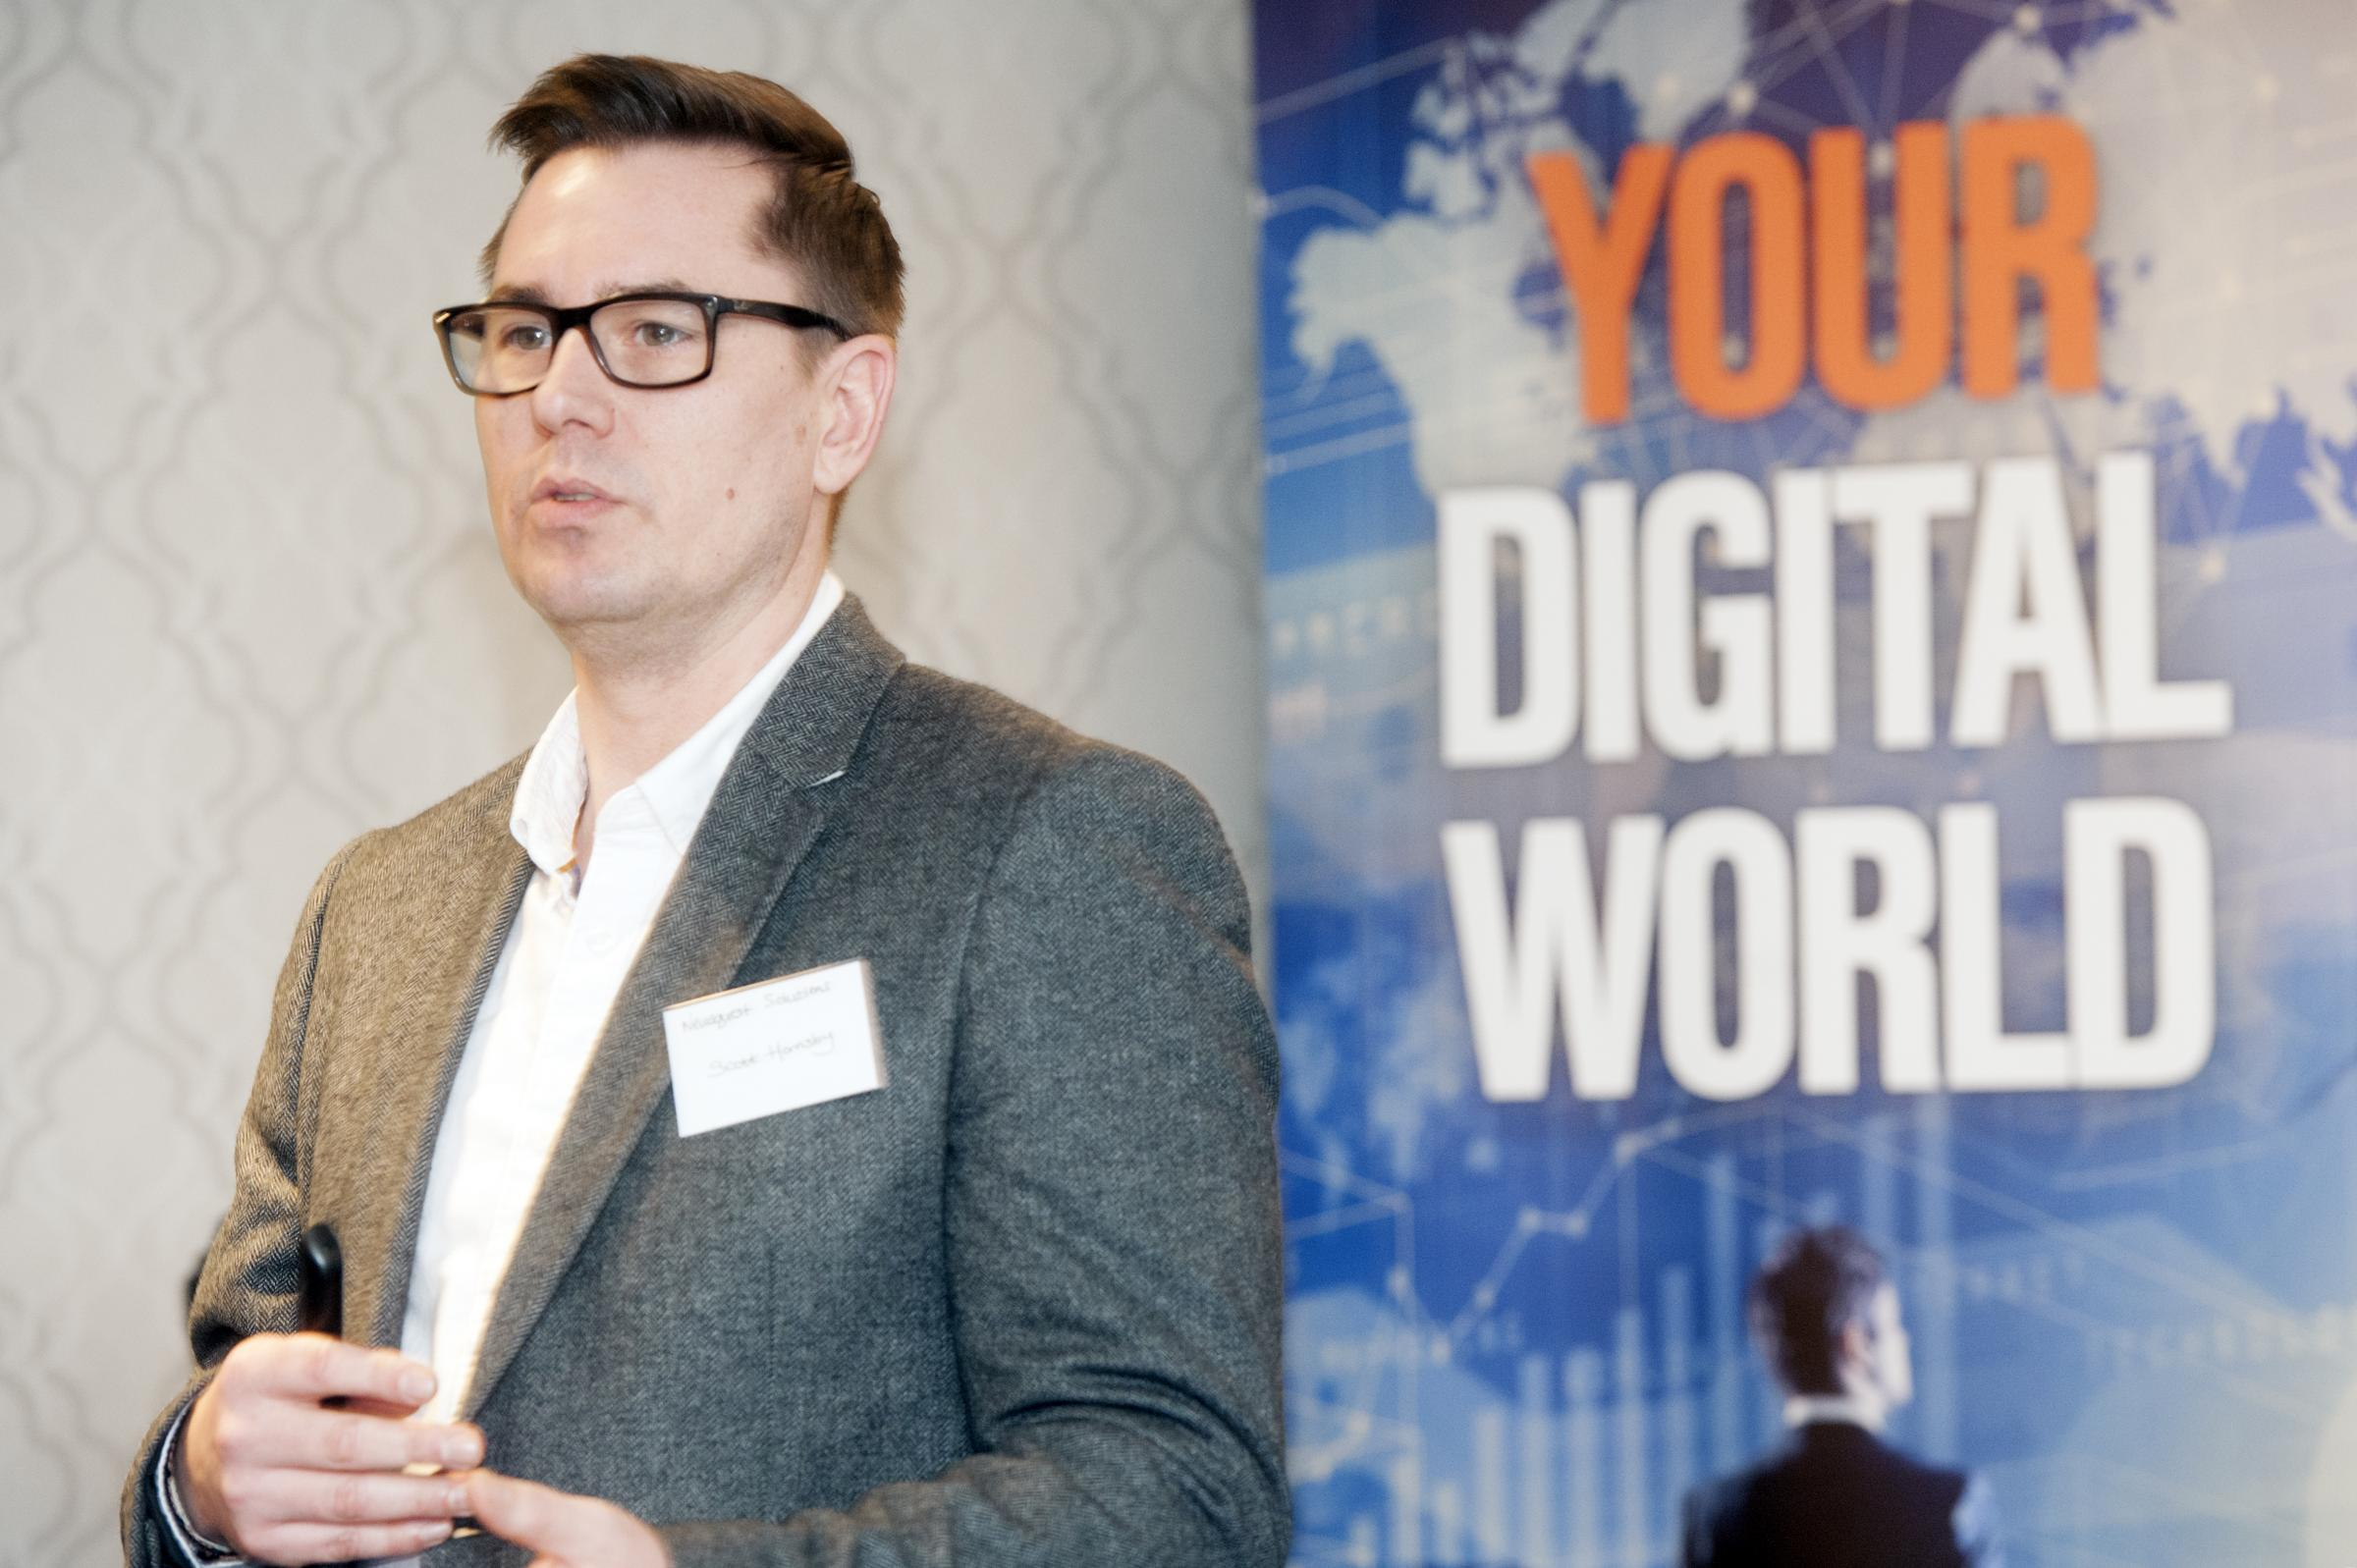 Newsquest London's digital & social media editor Scott Hornsby speaks at the Observer's first digital seminar